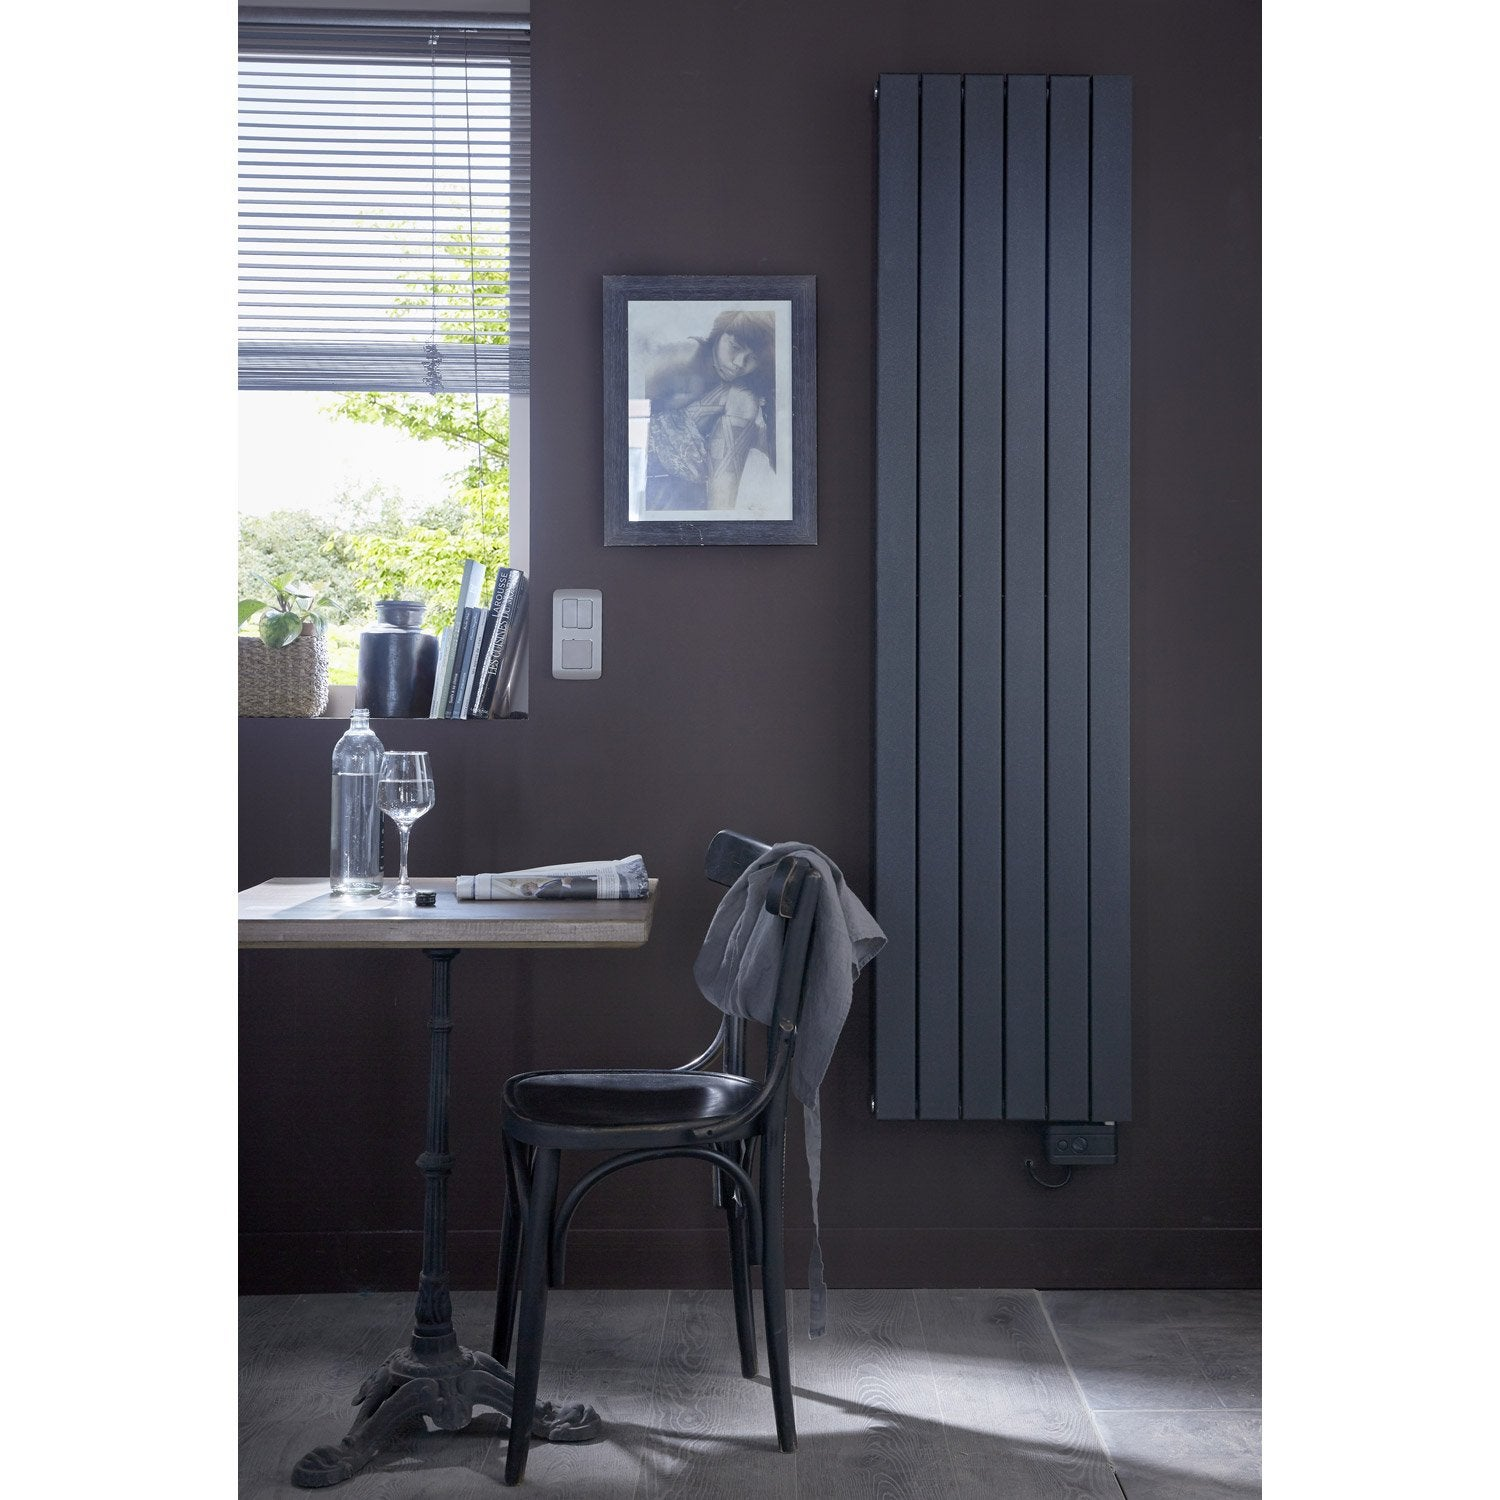 leroy merlin radiateur fonte elegant radiateur en fonte leroy merlin concernant ides pour. Black Bedroom Furniture Sets. Home Design Ideas